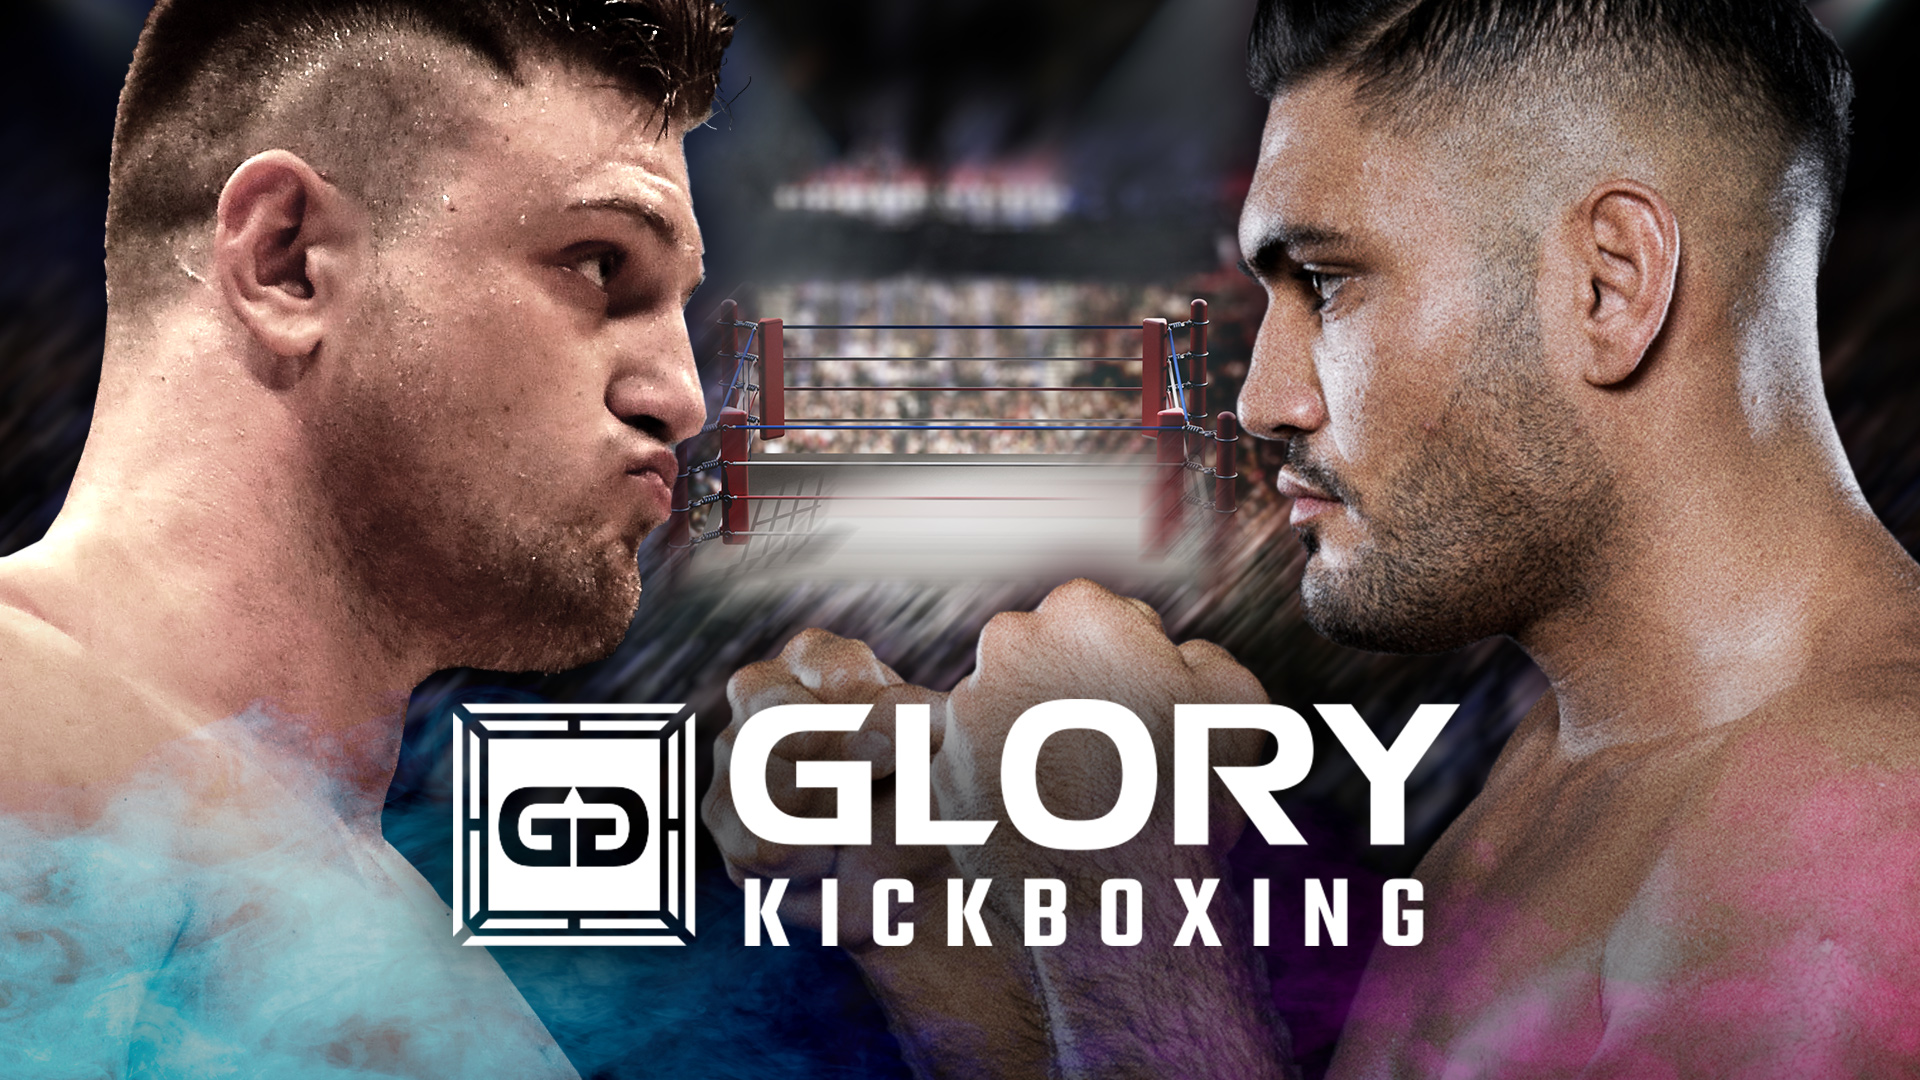 Glory 69 - Kickboxing Abdallah vs. Smolik